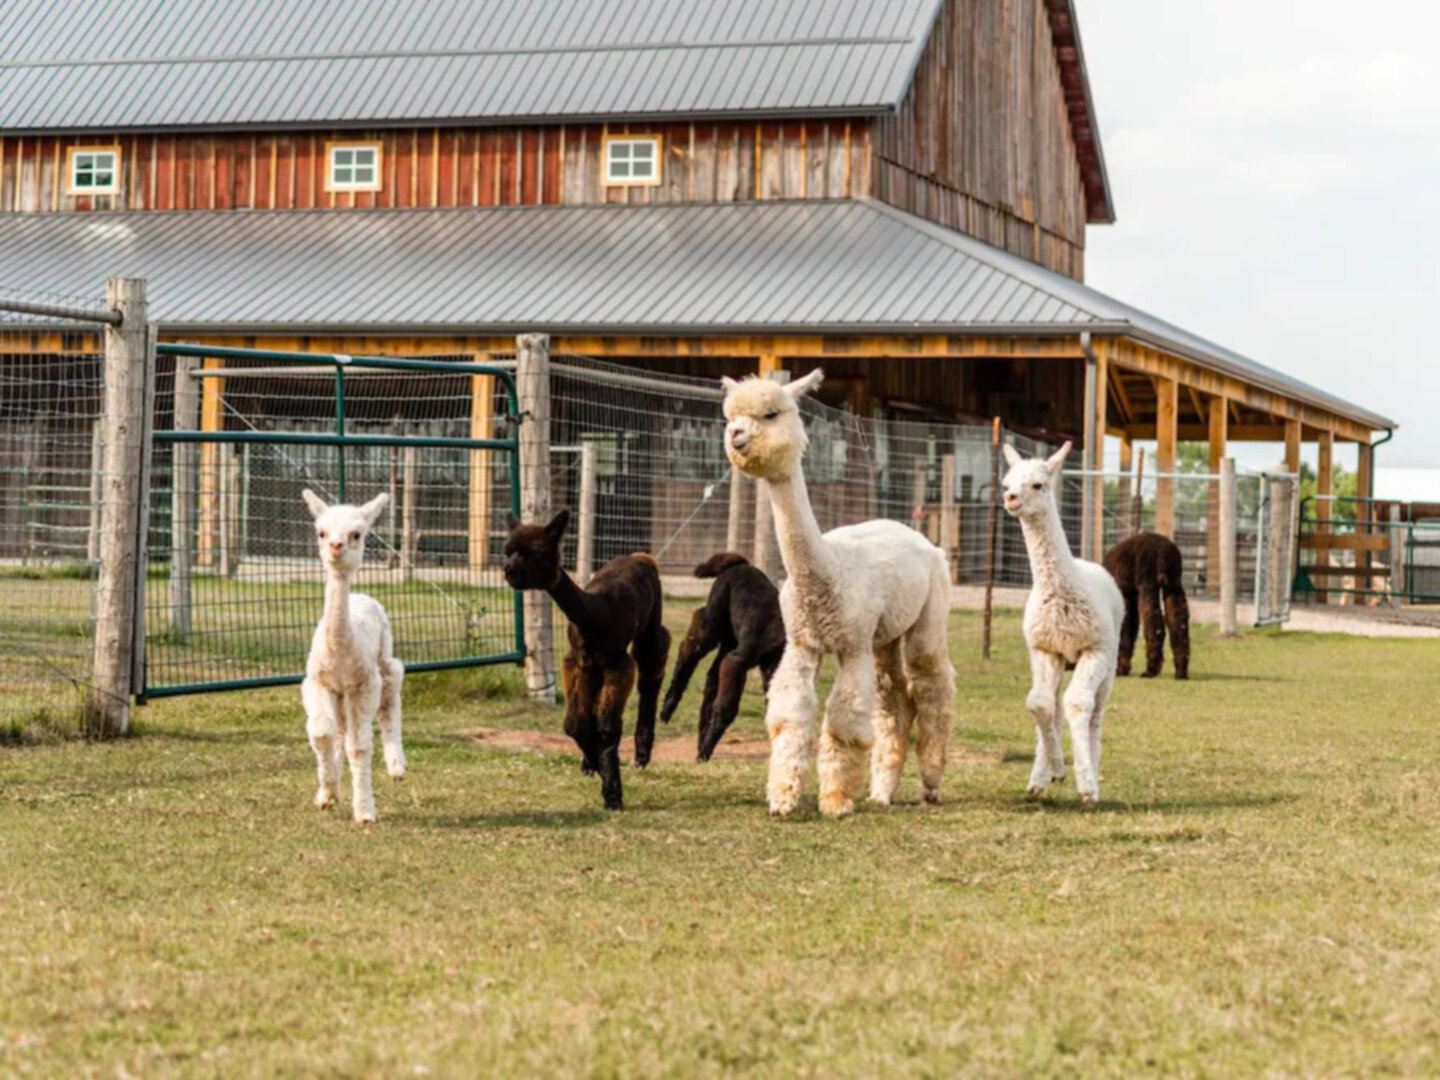 A group of sheep that are standing in front of a building at Sabamba Alpaca Ranch Bed and Breakfast.